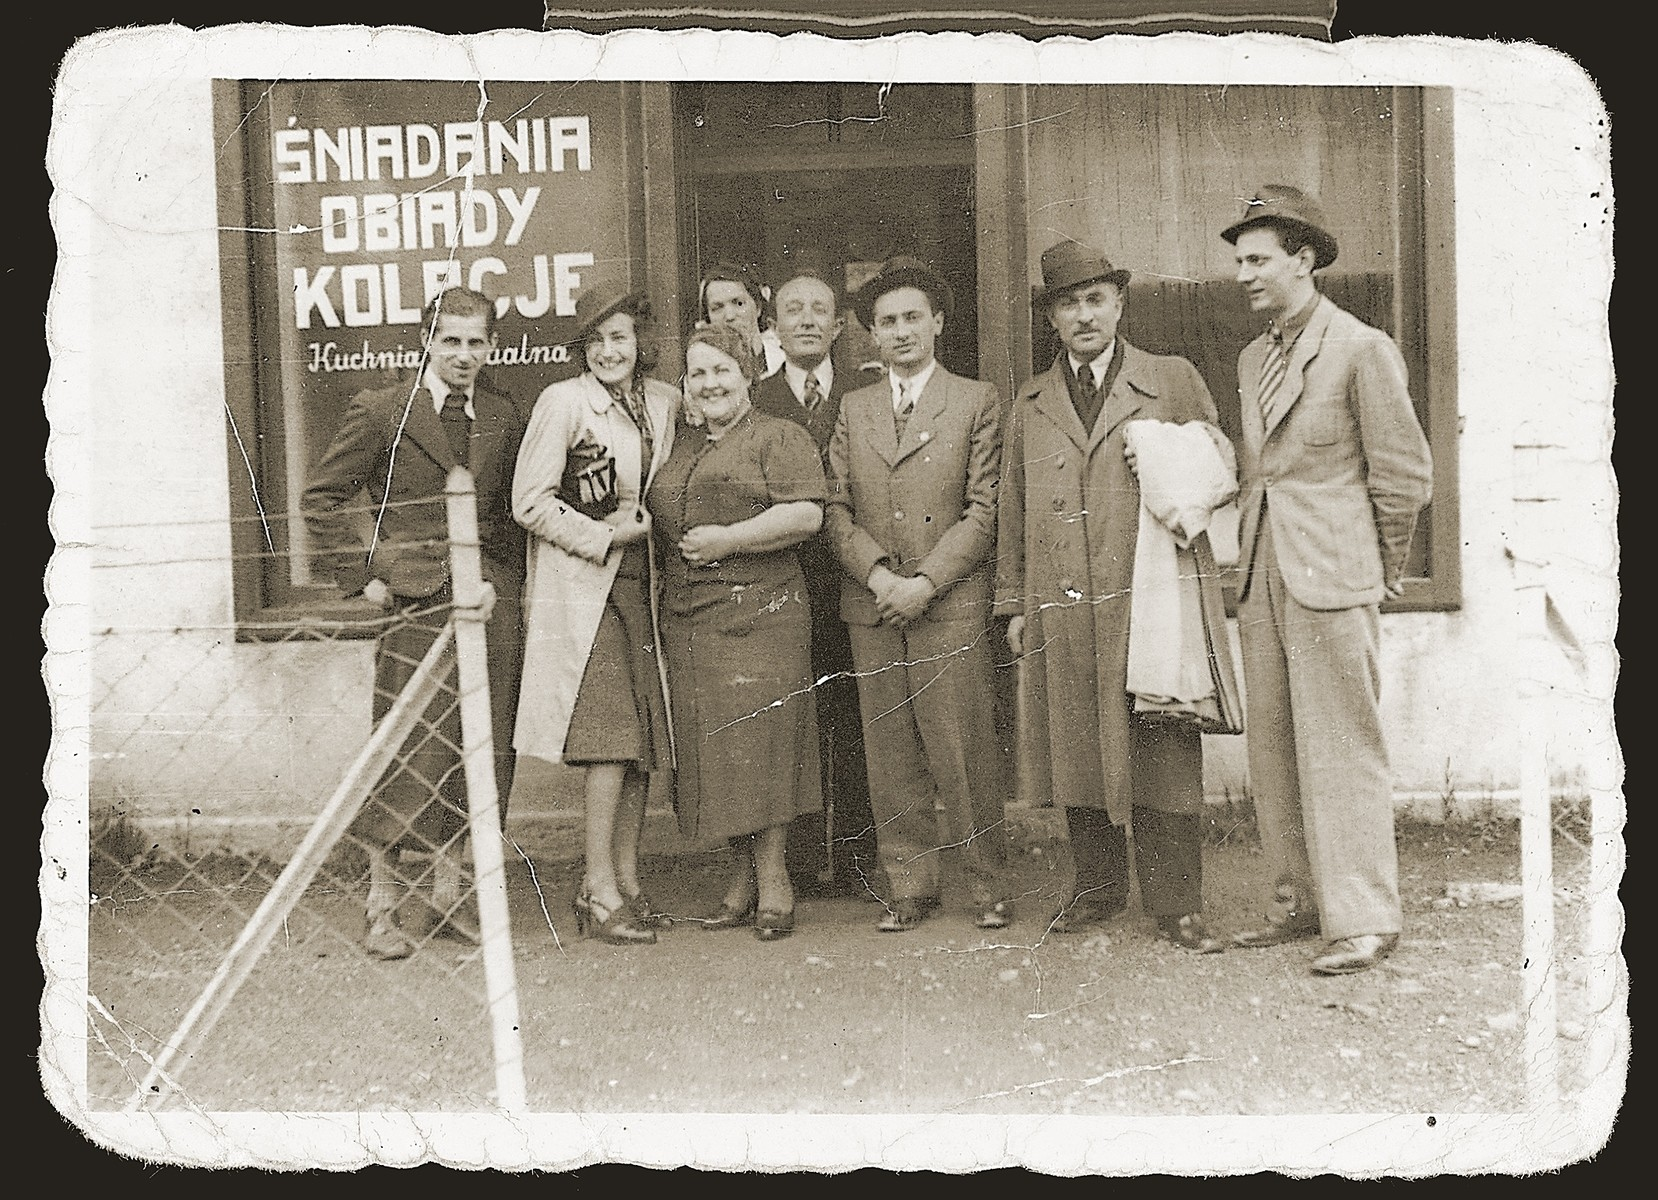 Members of the Swajcer family pose outside a cafe in Sosnowiec.